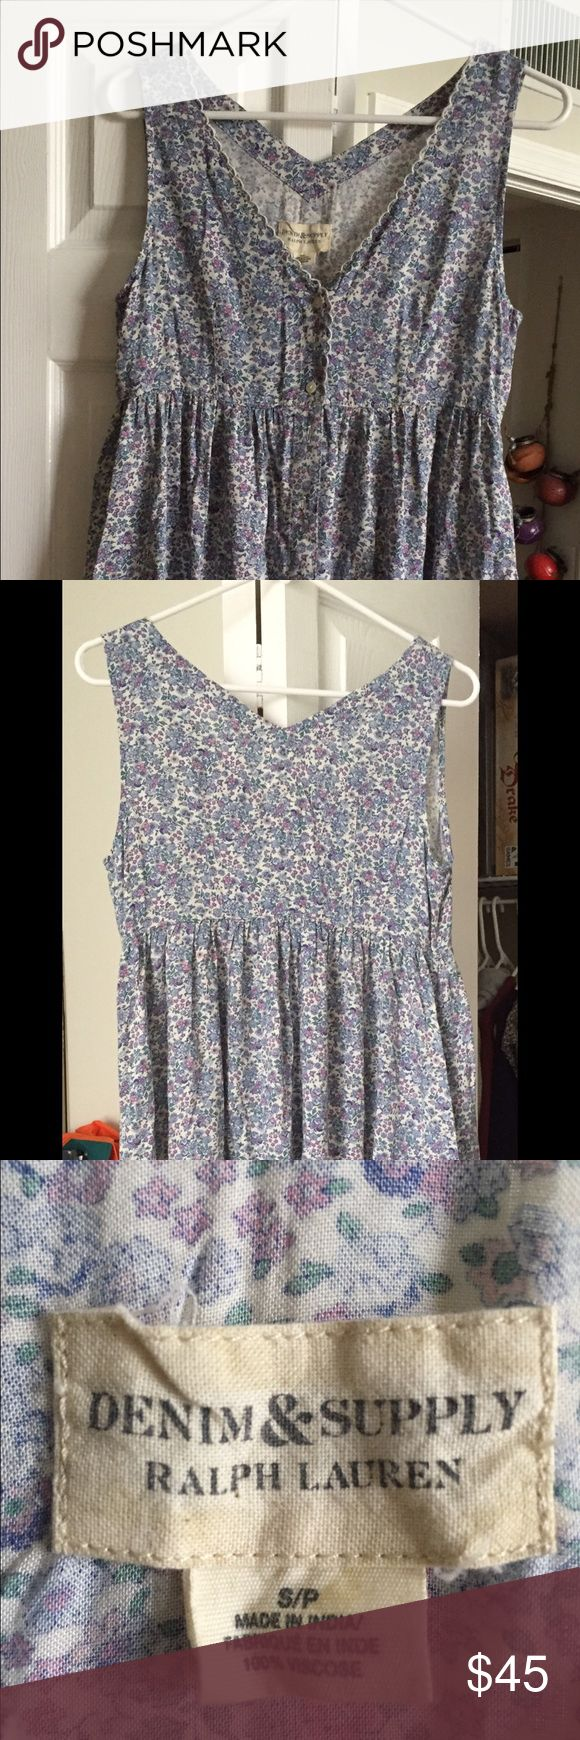 Dress by Denim & supply Ralph Lauren Size S, dress V neckline, buttoned placked, sleeveless, machine washable, never been worn.    Original price $92. Demin & Supply Ralph Lauren Dresses Midi